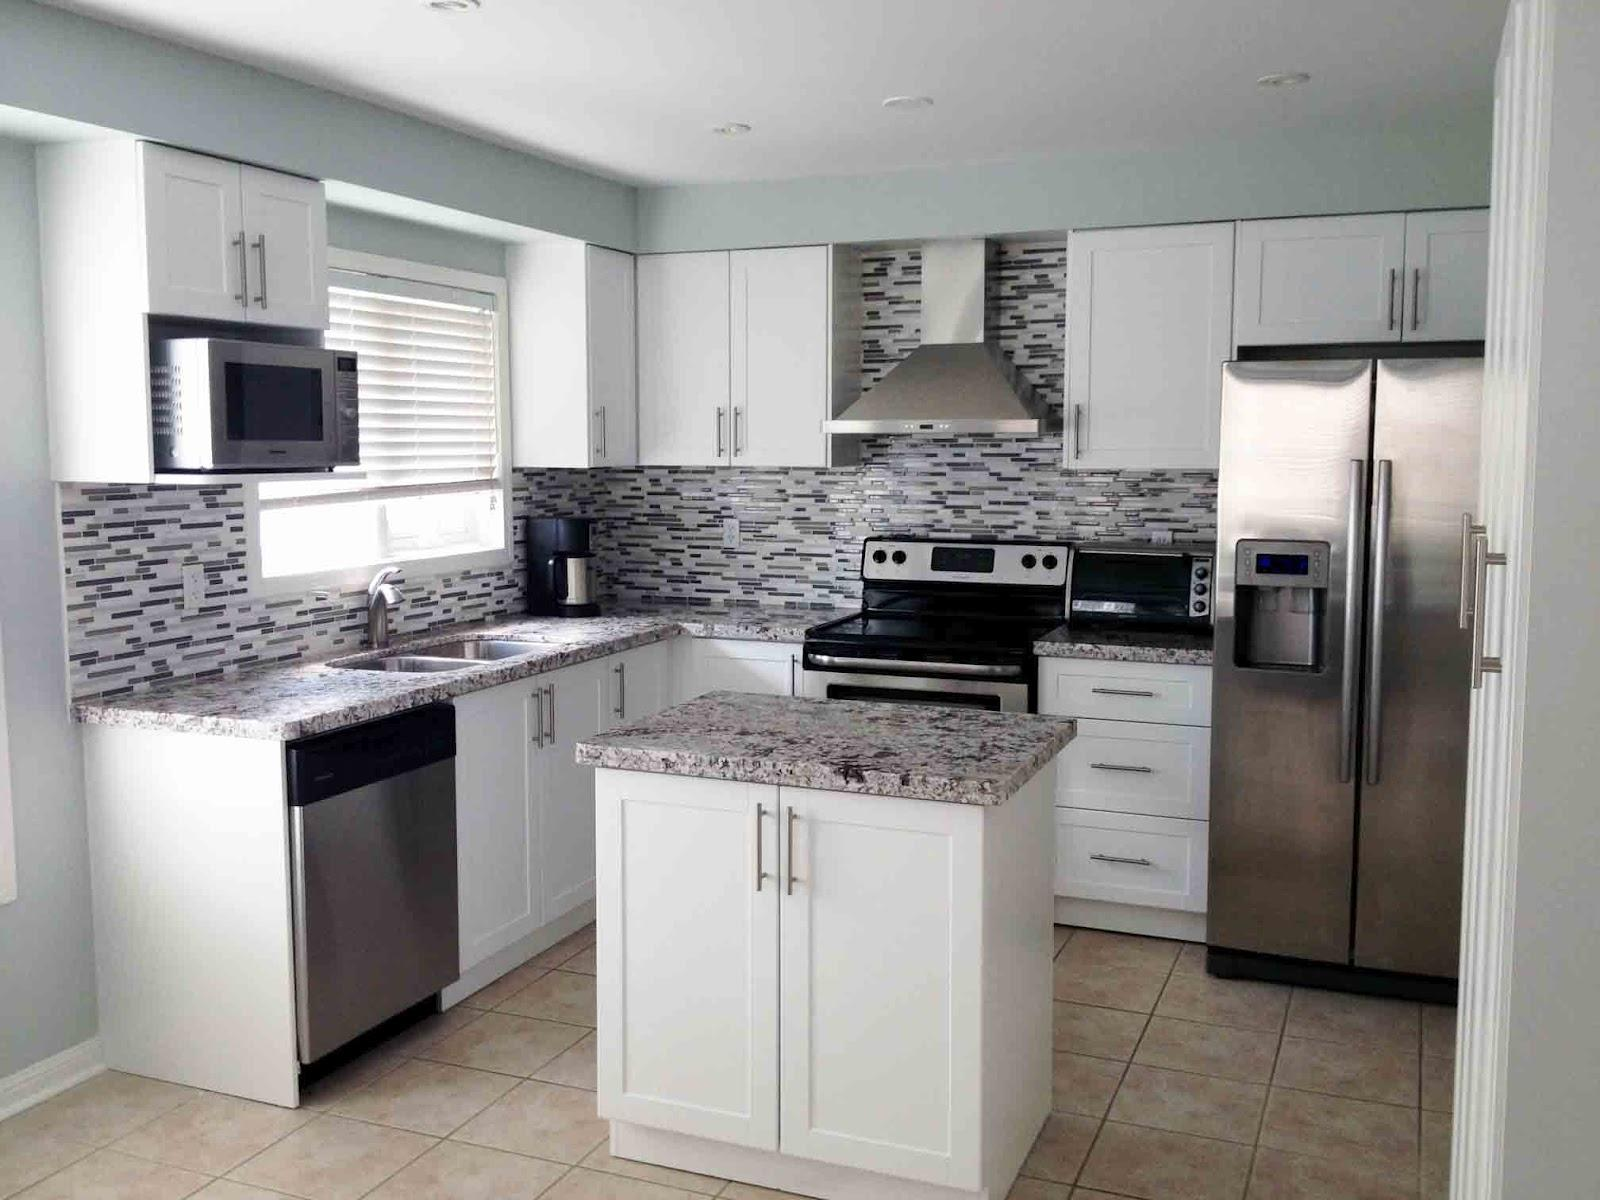 RTA Kitchen And Bathroom Cabinets With Wholesale Prices | Free ...